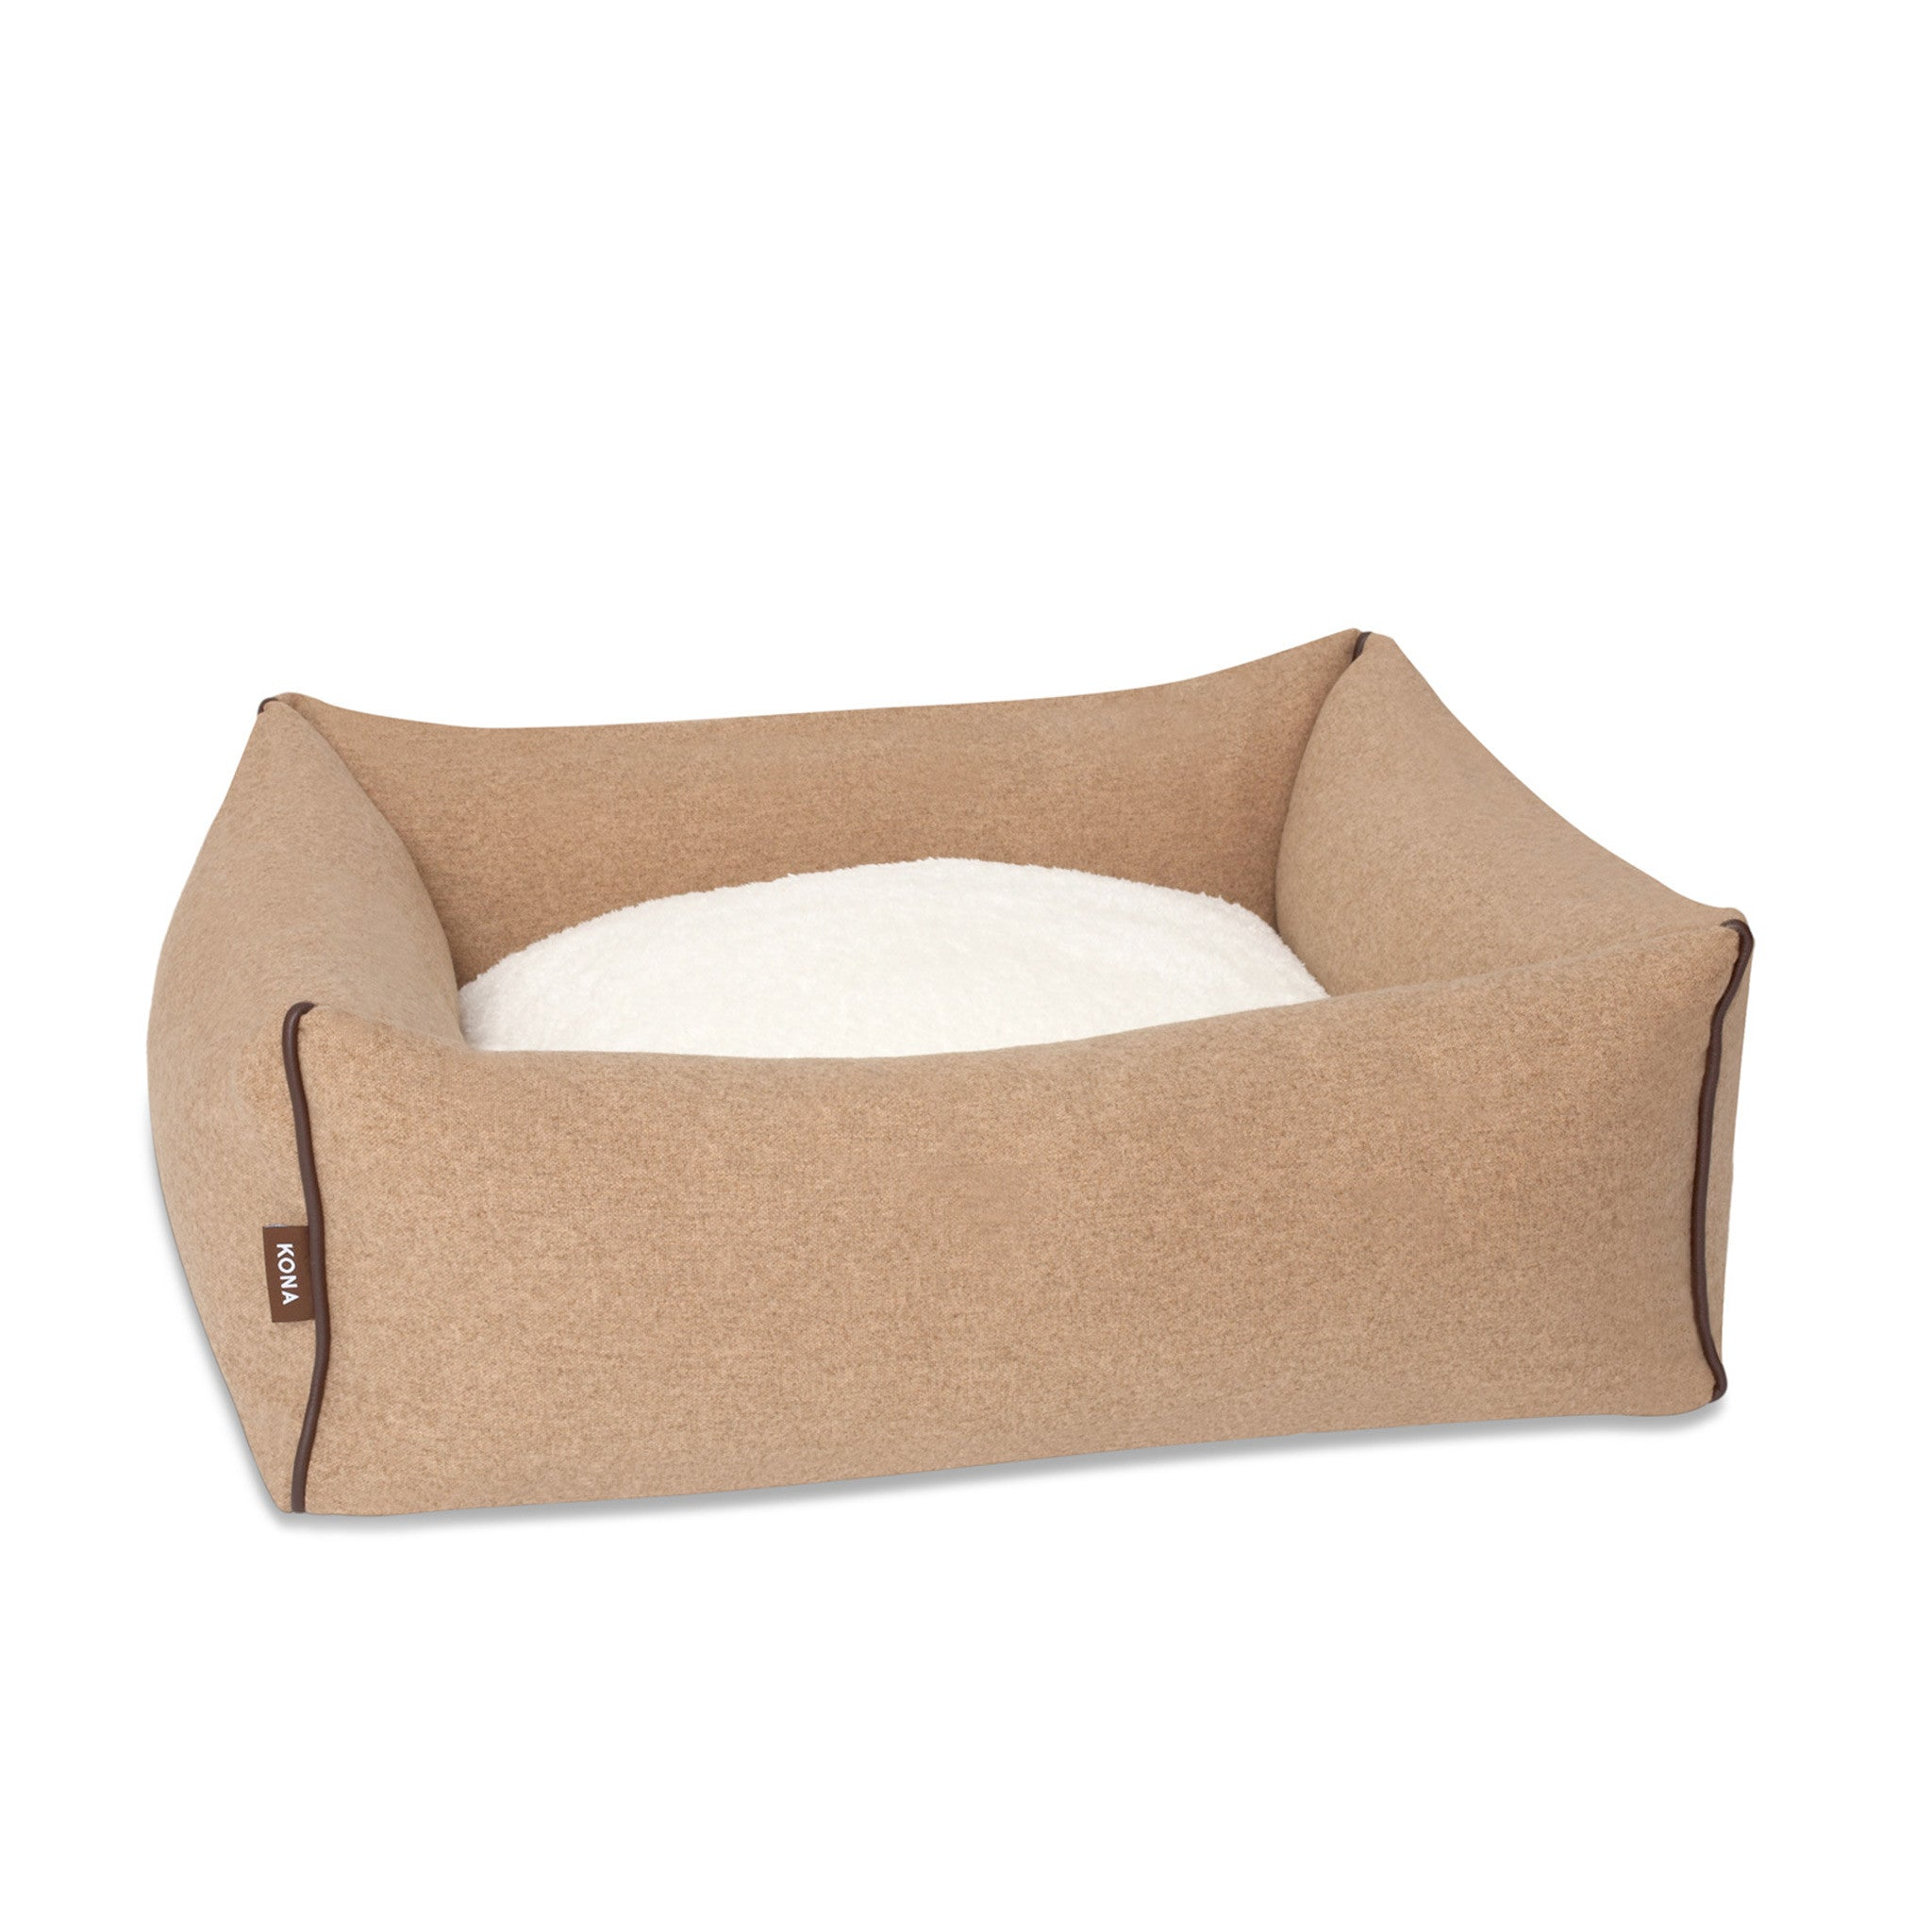 dog memory cover products orthopedic shop a puplounge pupcuddle bed treat orthopaedic removable usa foam